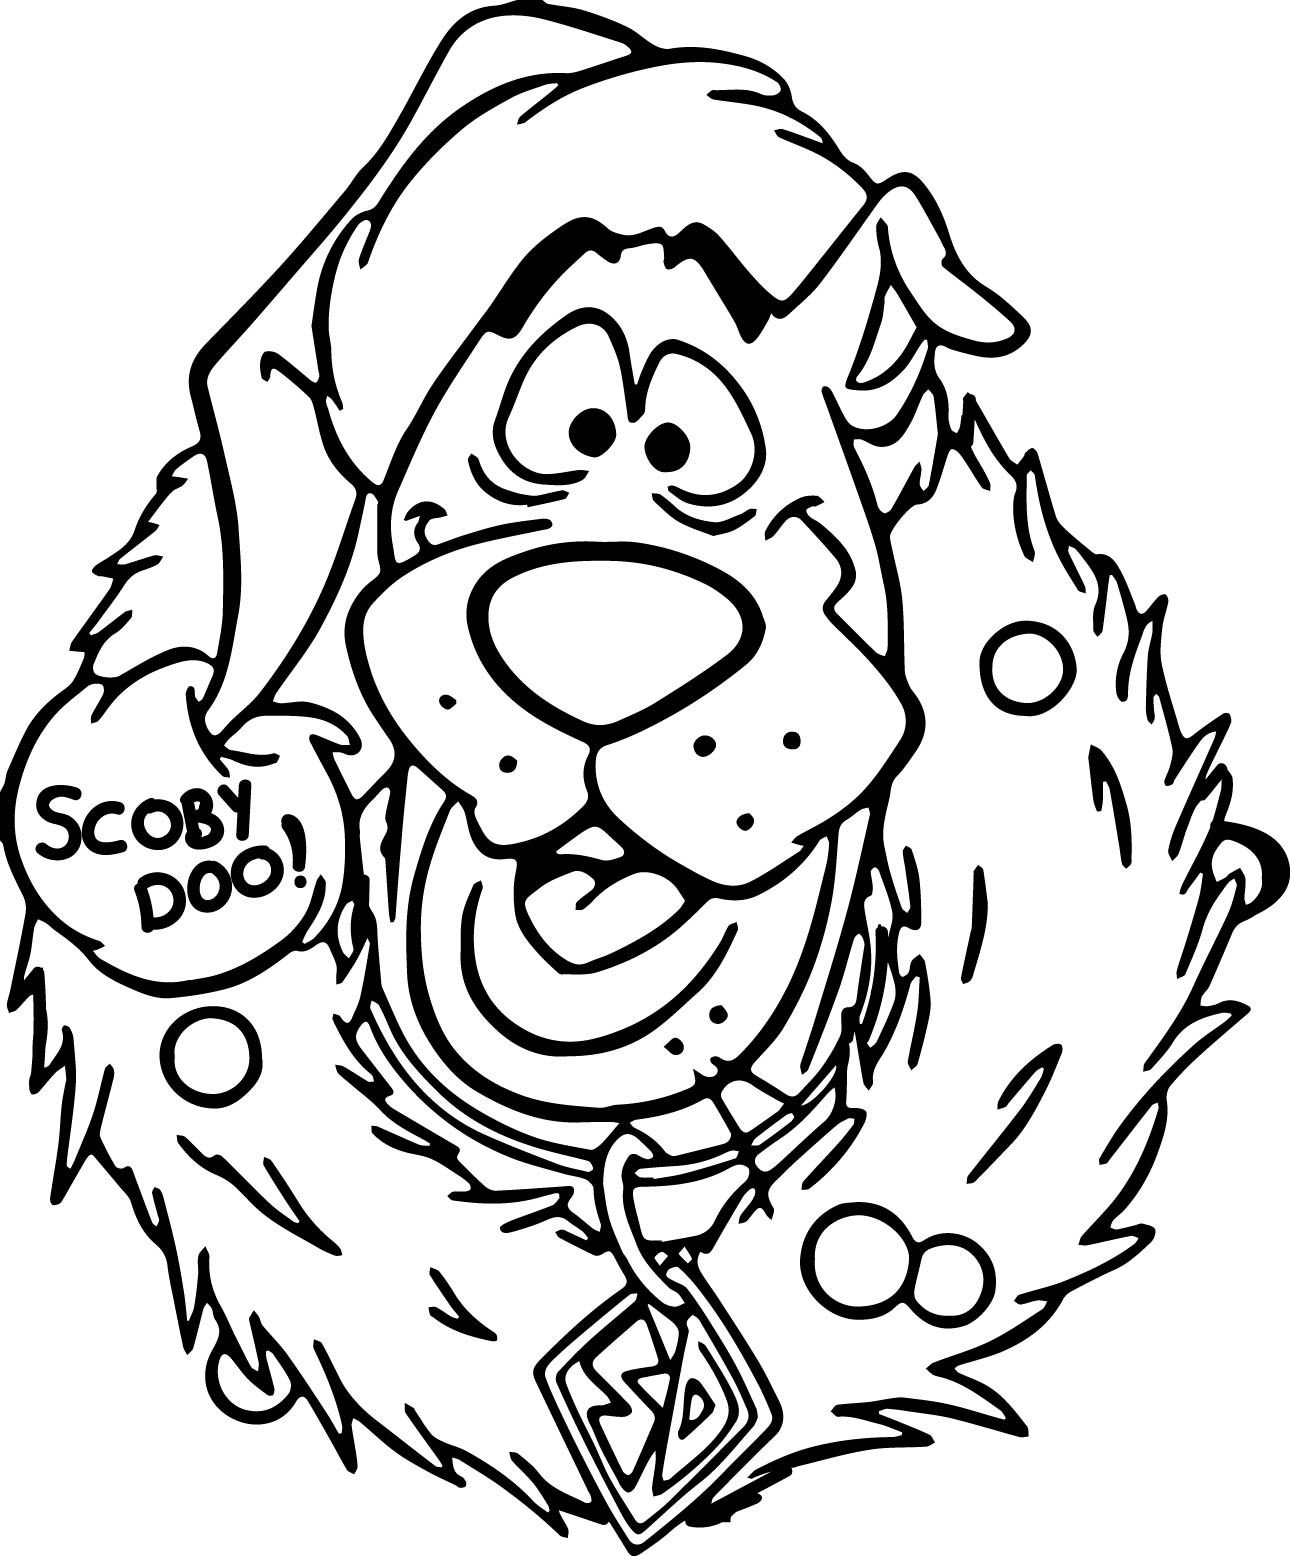 Cool Scooby Doo Christmas Coloring Printable Pages Download Christmas Coloring Sheets Free Christmas Coloring Pages Kids Christmas Coloring Pages